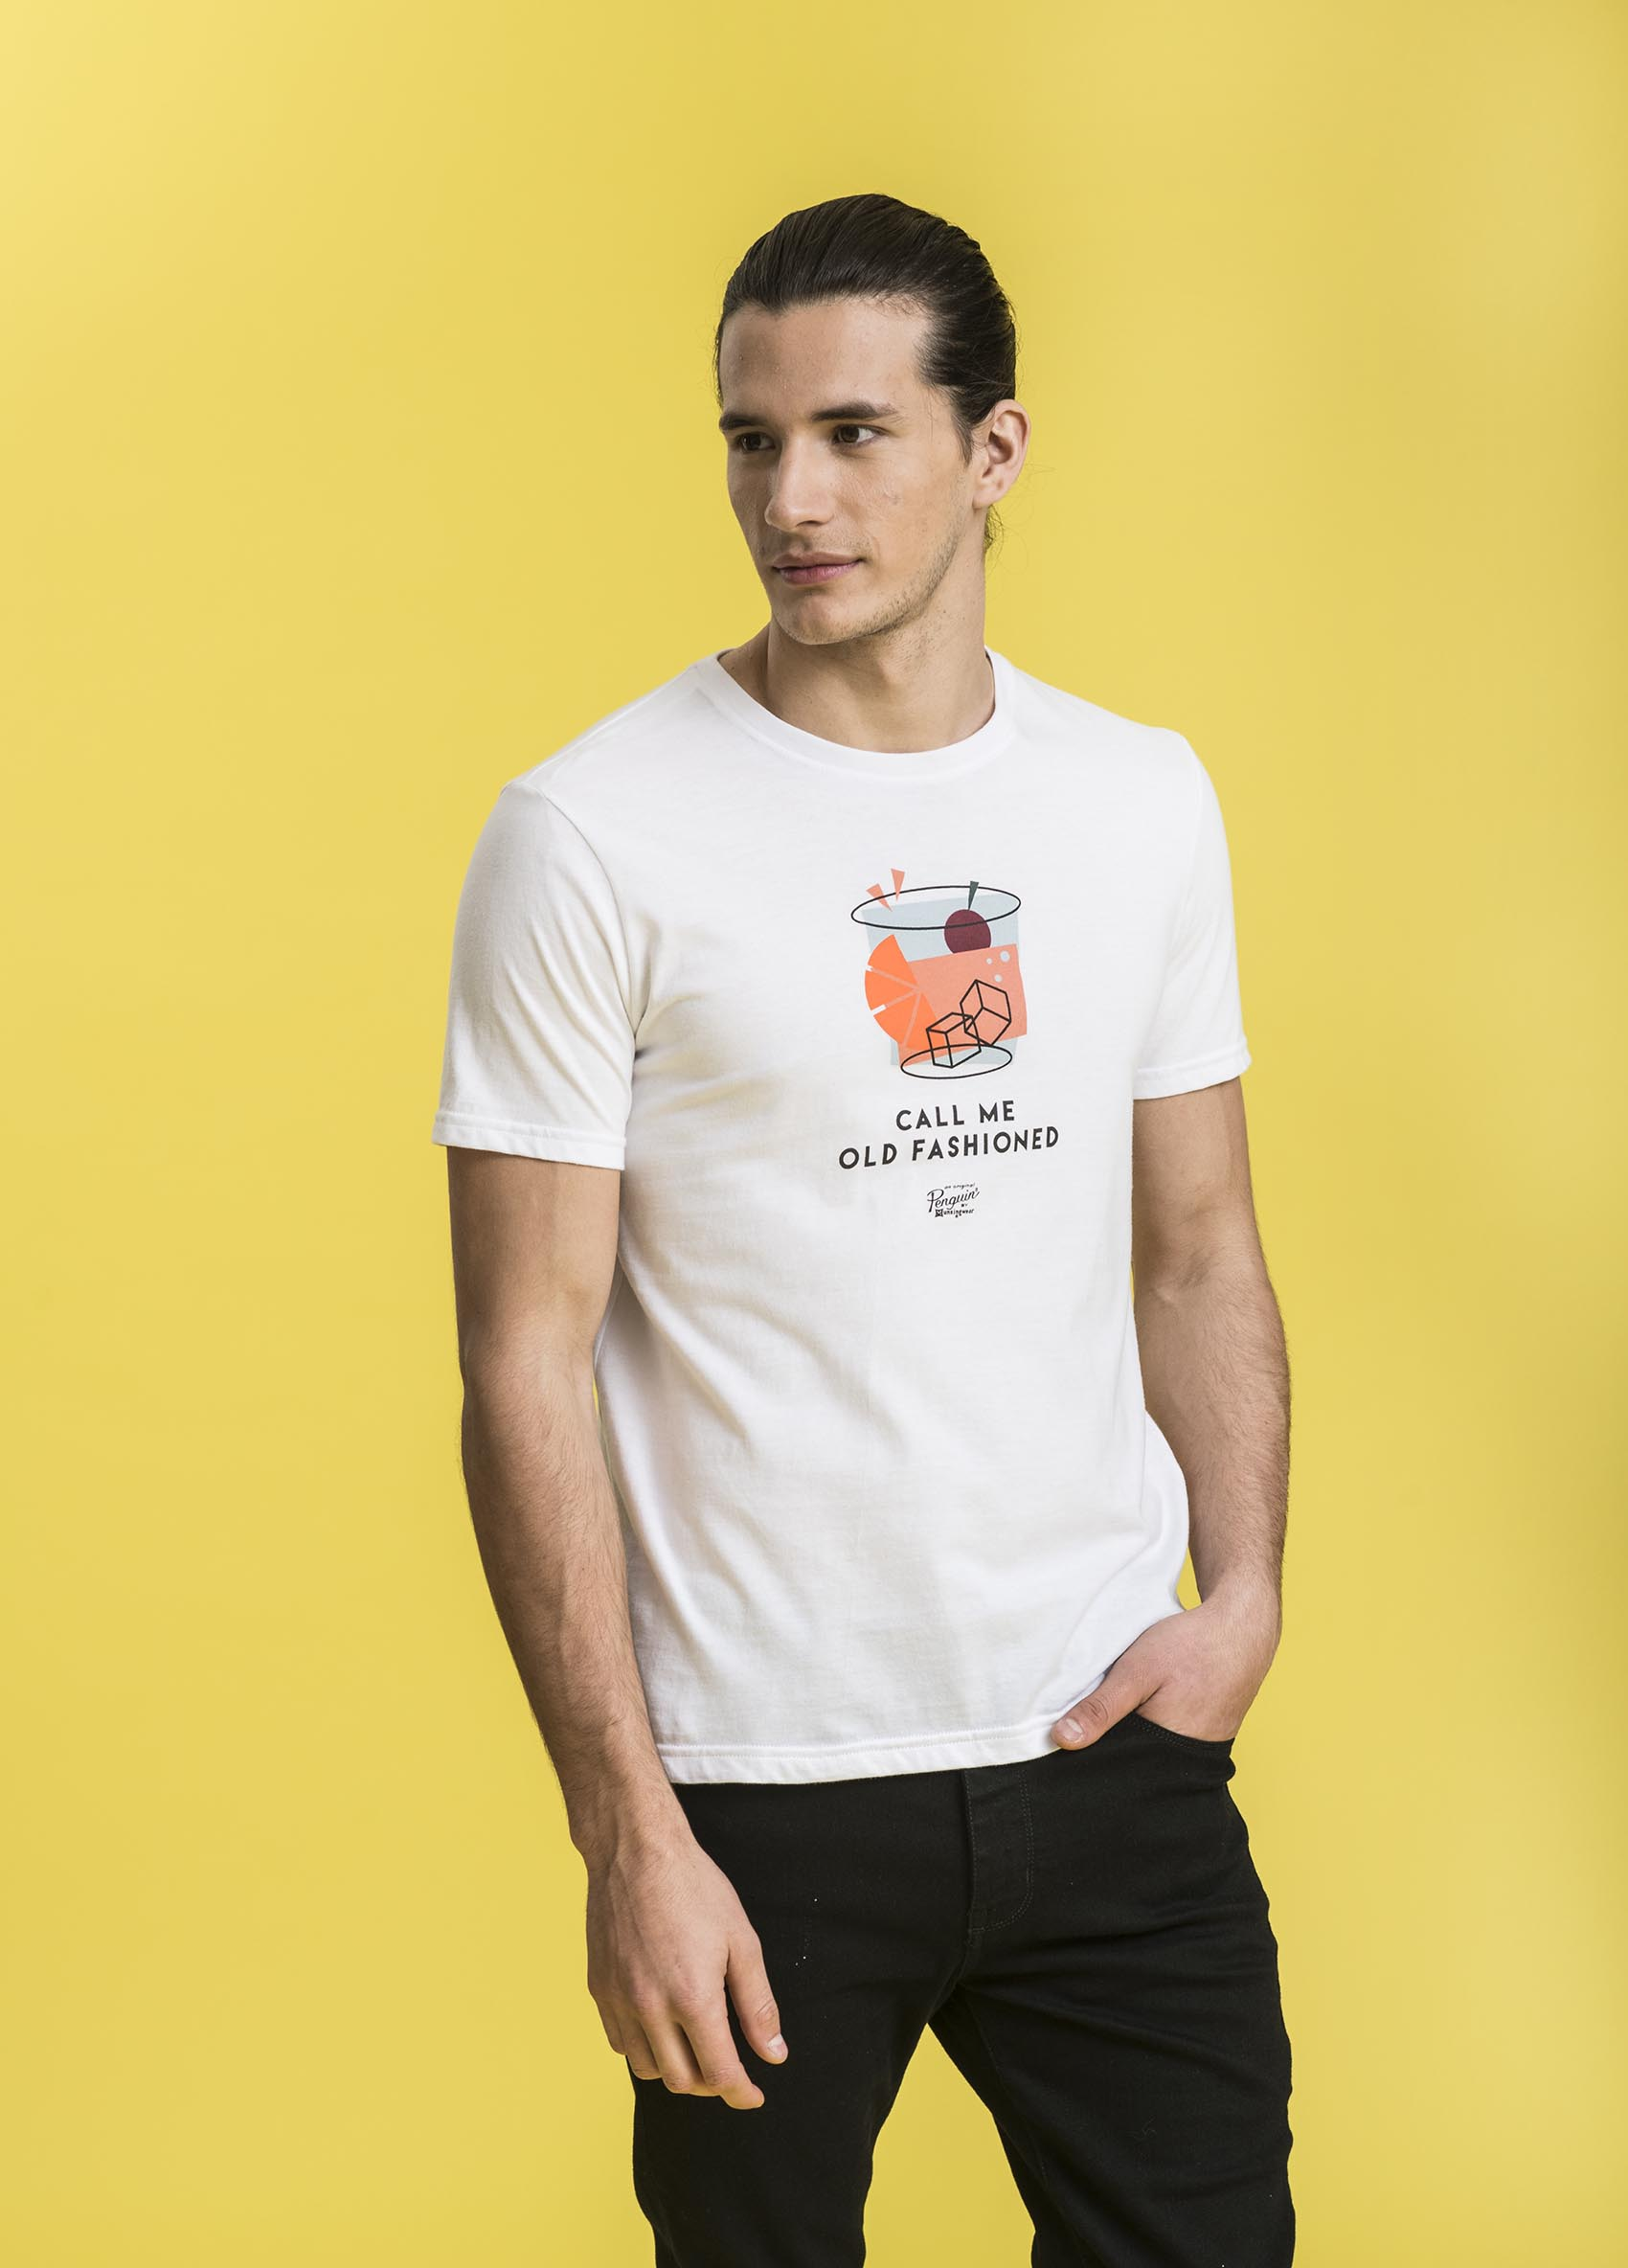 penguin_call-me-old-fashioned-tee_35-25-2019__picture-12150